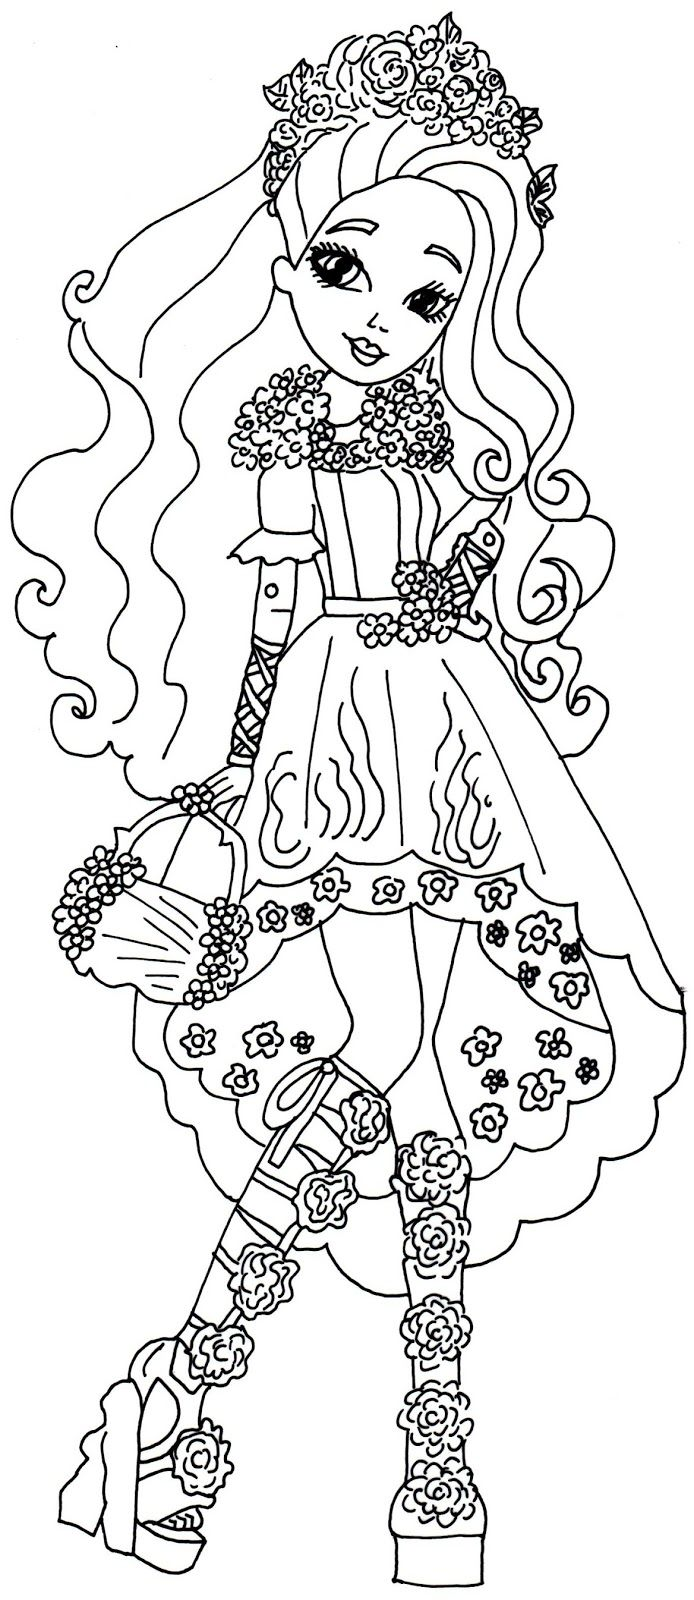 Spring Unsprung Cedar Wood Ever After High Coloring Page